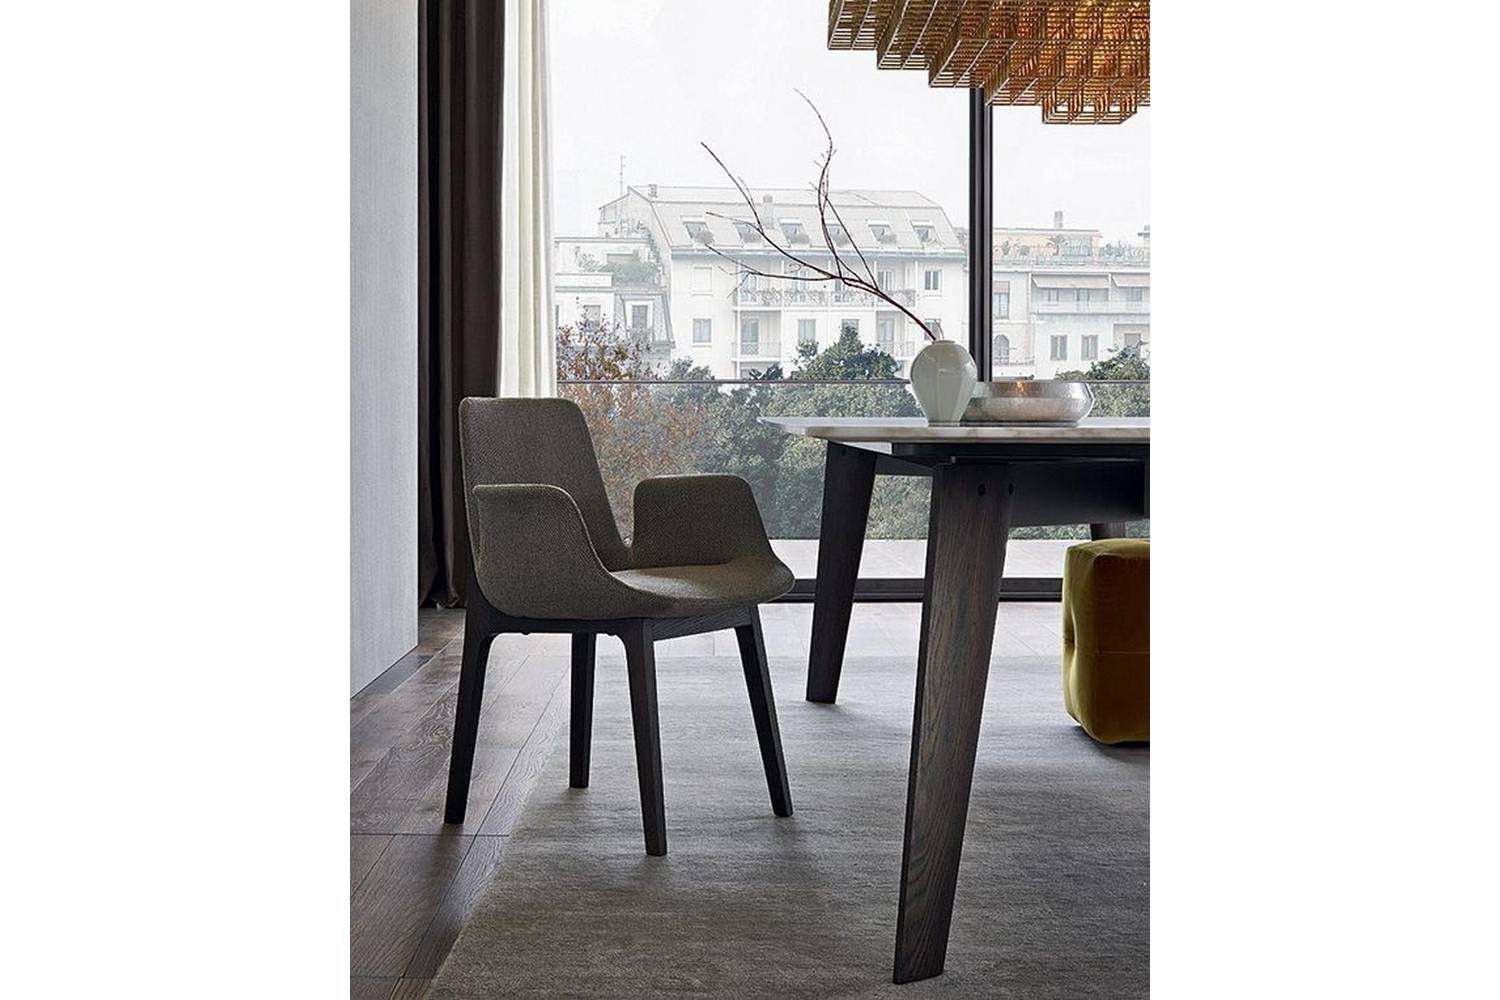 Ventura Chair by J. M. Massaud for Poliform